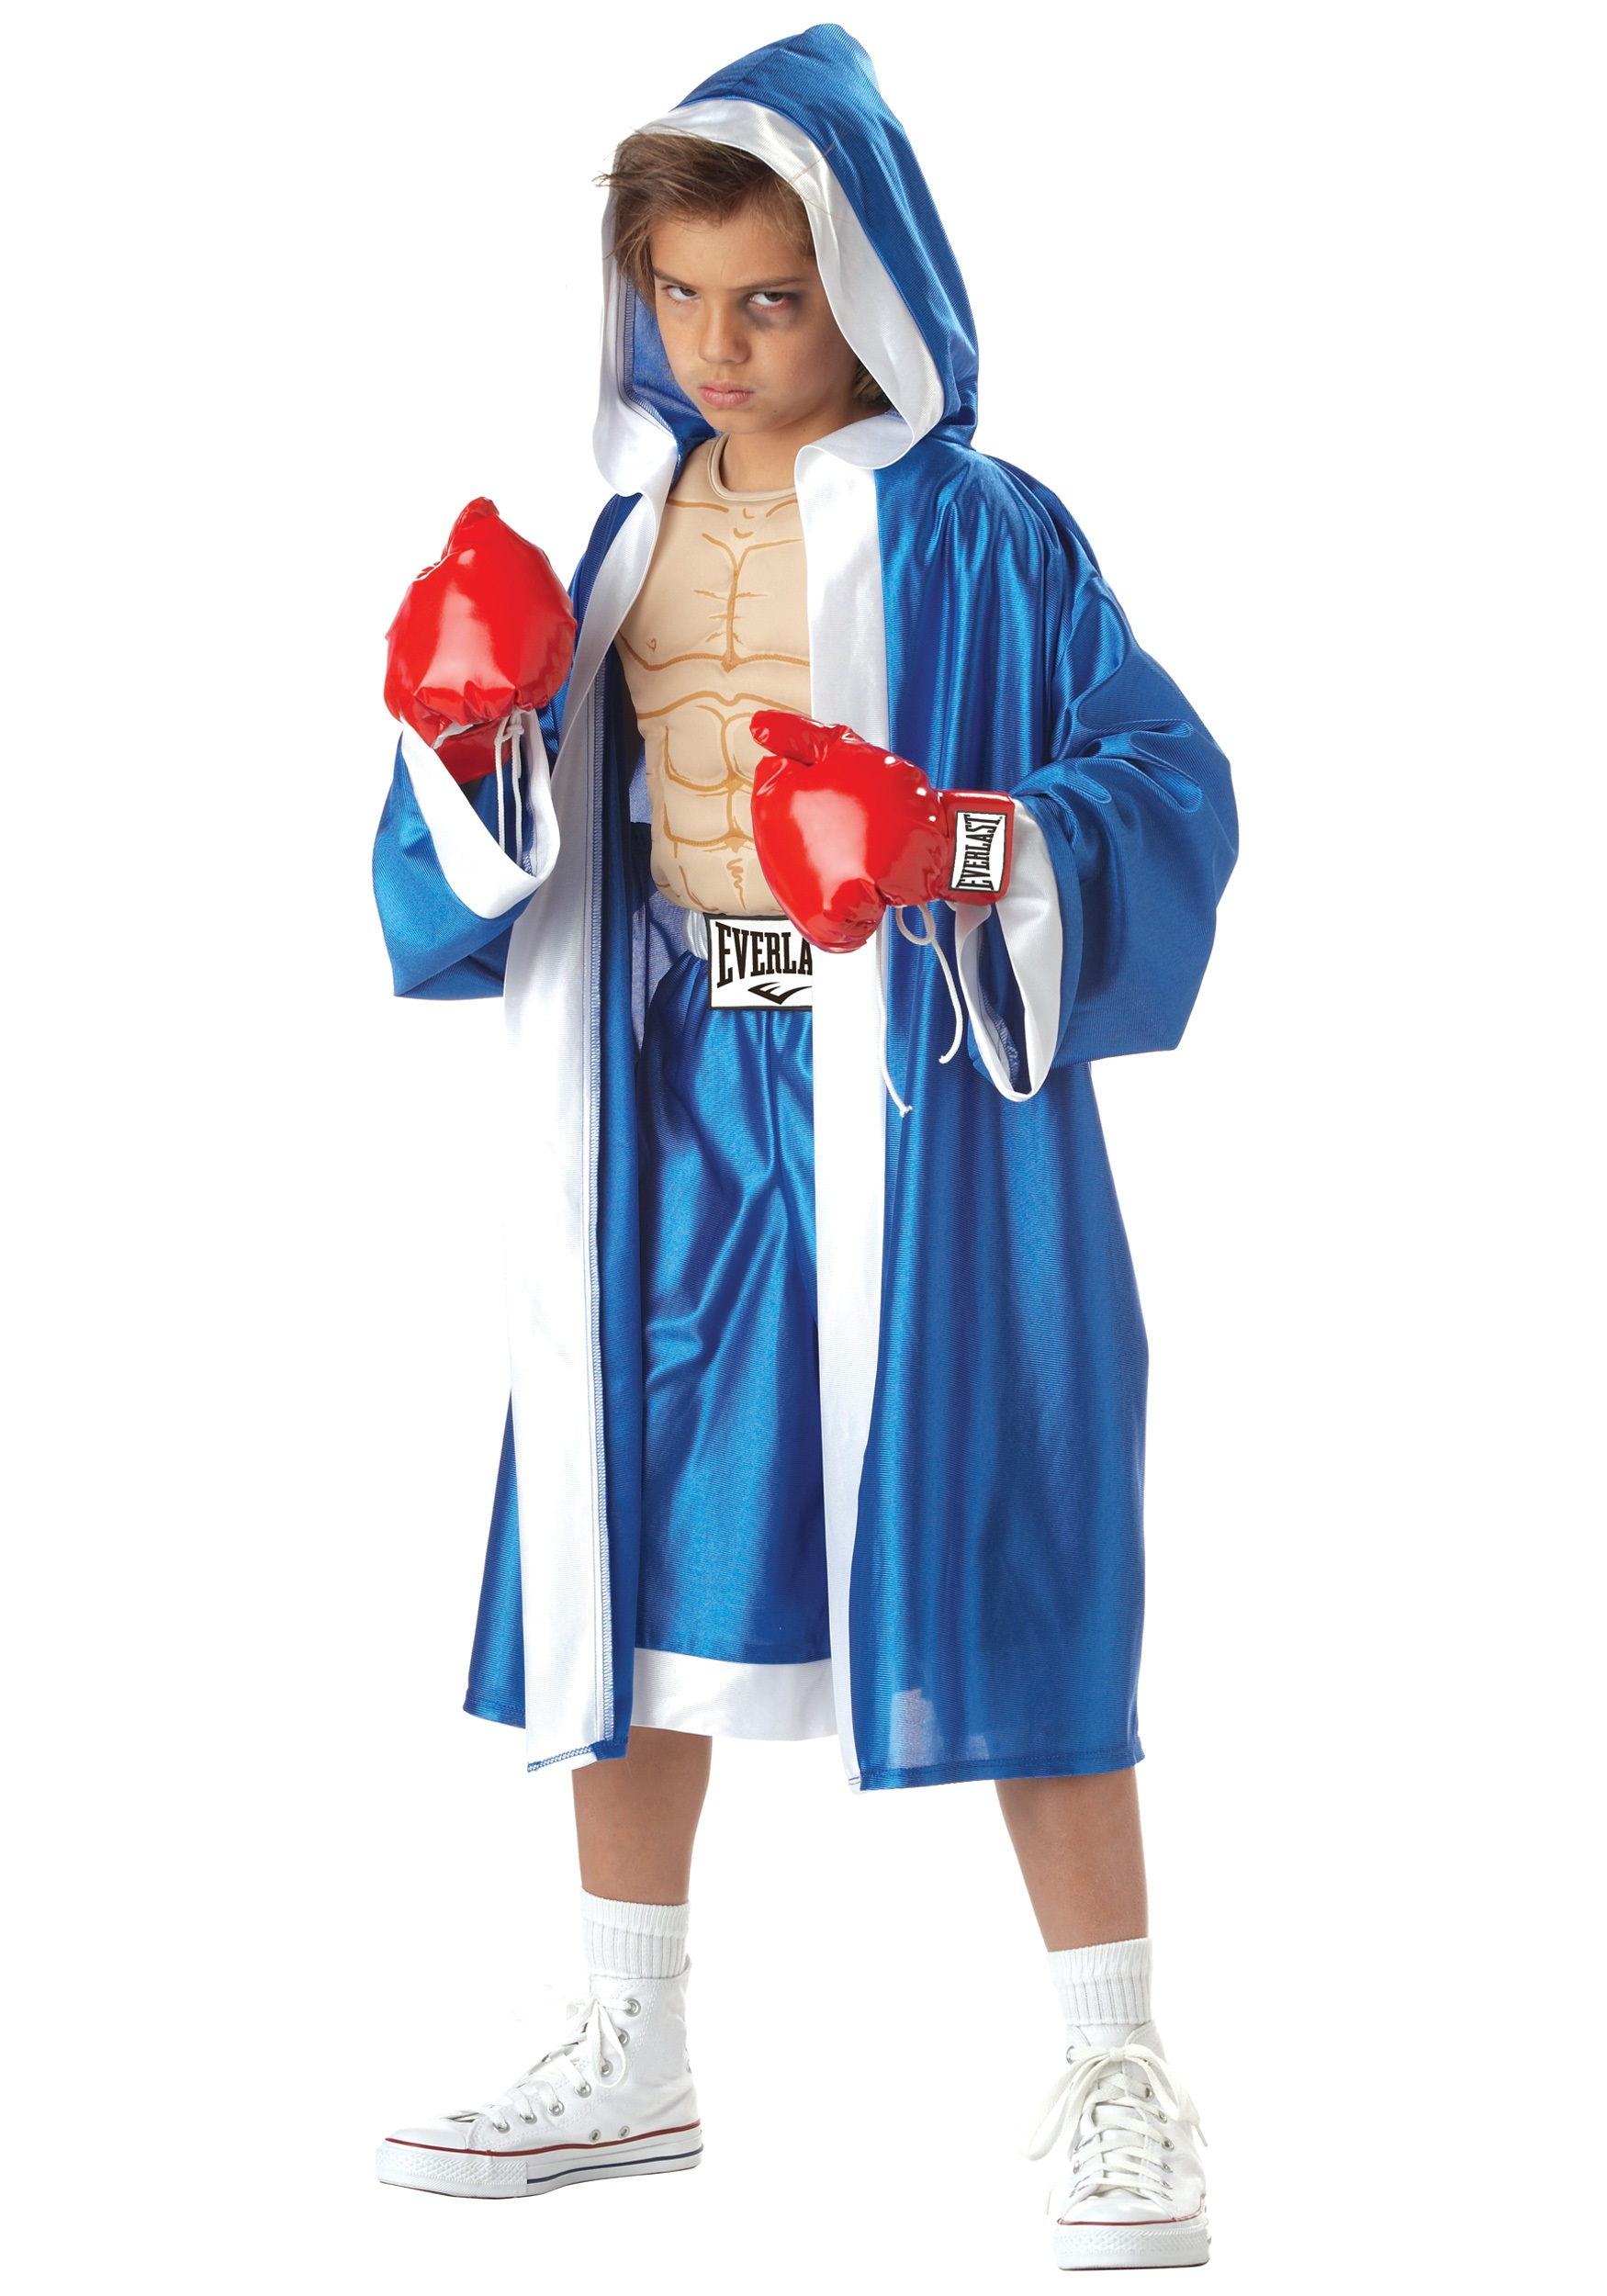 Kids Everlast Boxer Costume  sc 1 st  Halloween Costumes : kids baseball costumes  - Germanpascual.Com